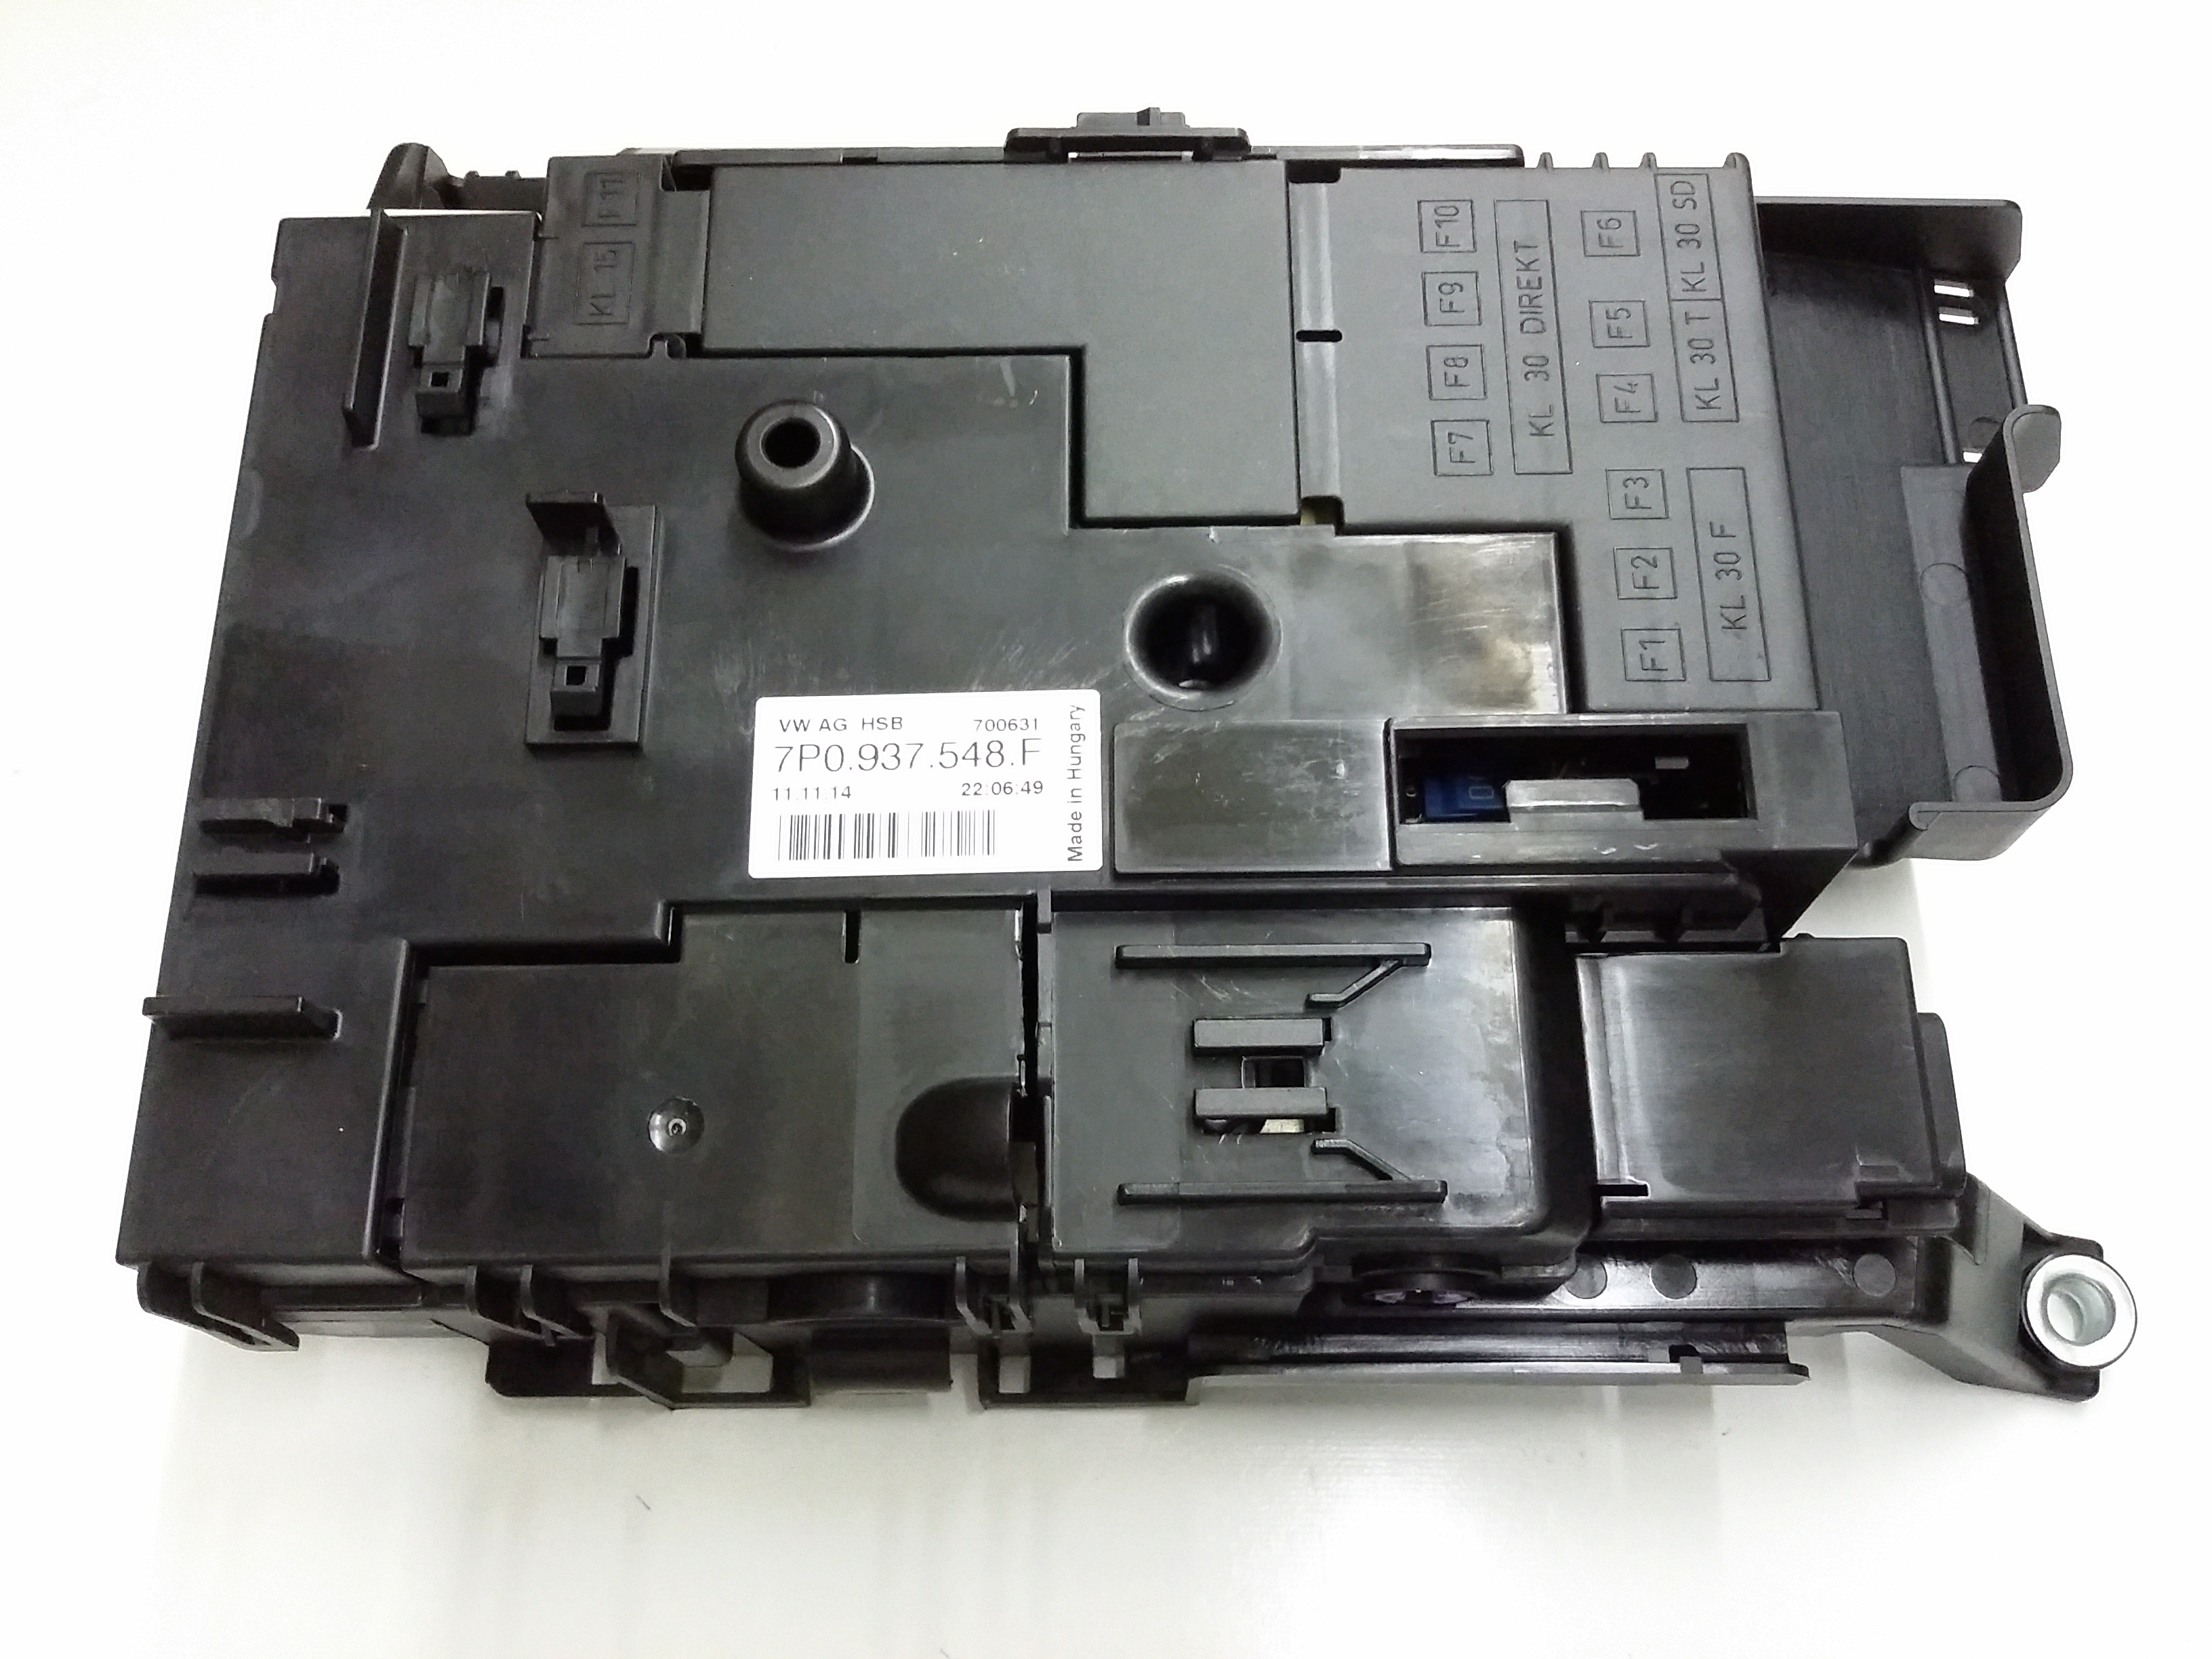 2013 Beetle Fuse Box Location Vw Engine Conpartment Free Wiring Diagram For You Volkswagen Touareg Passenger 95 Passat